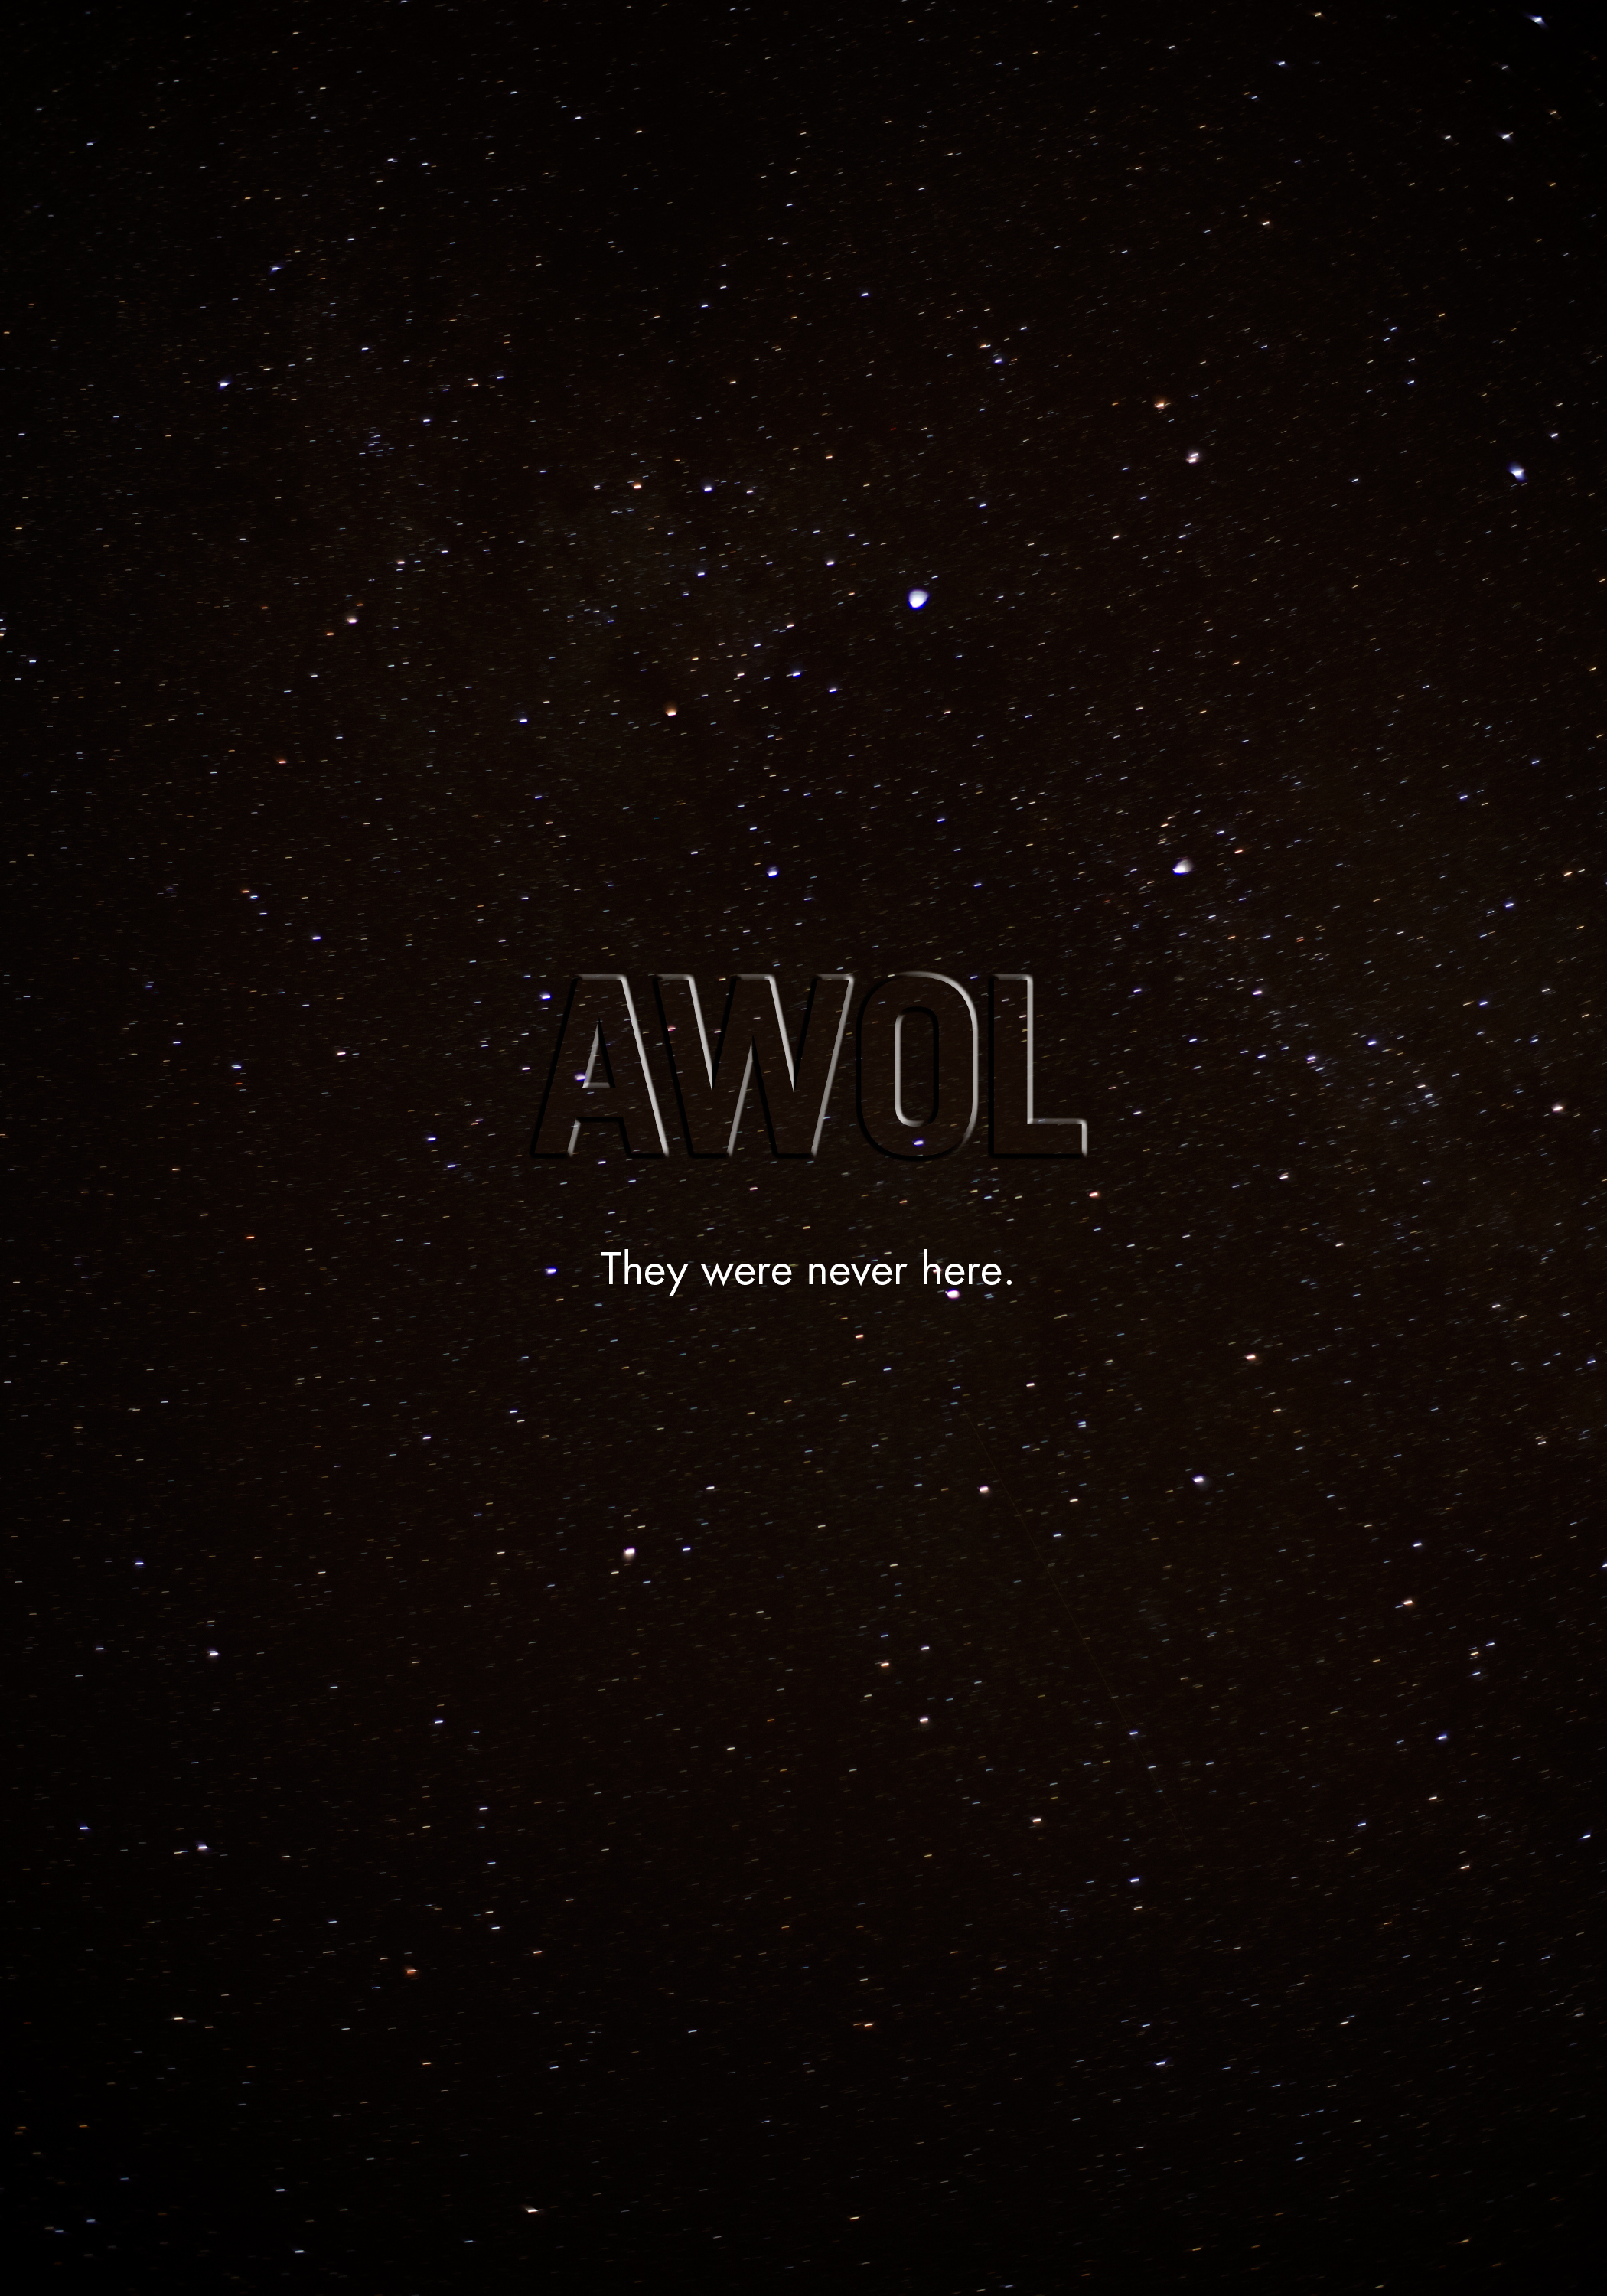 AWOL 1-Sheet.Never Here copy.jpg